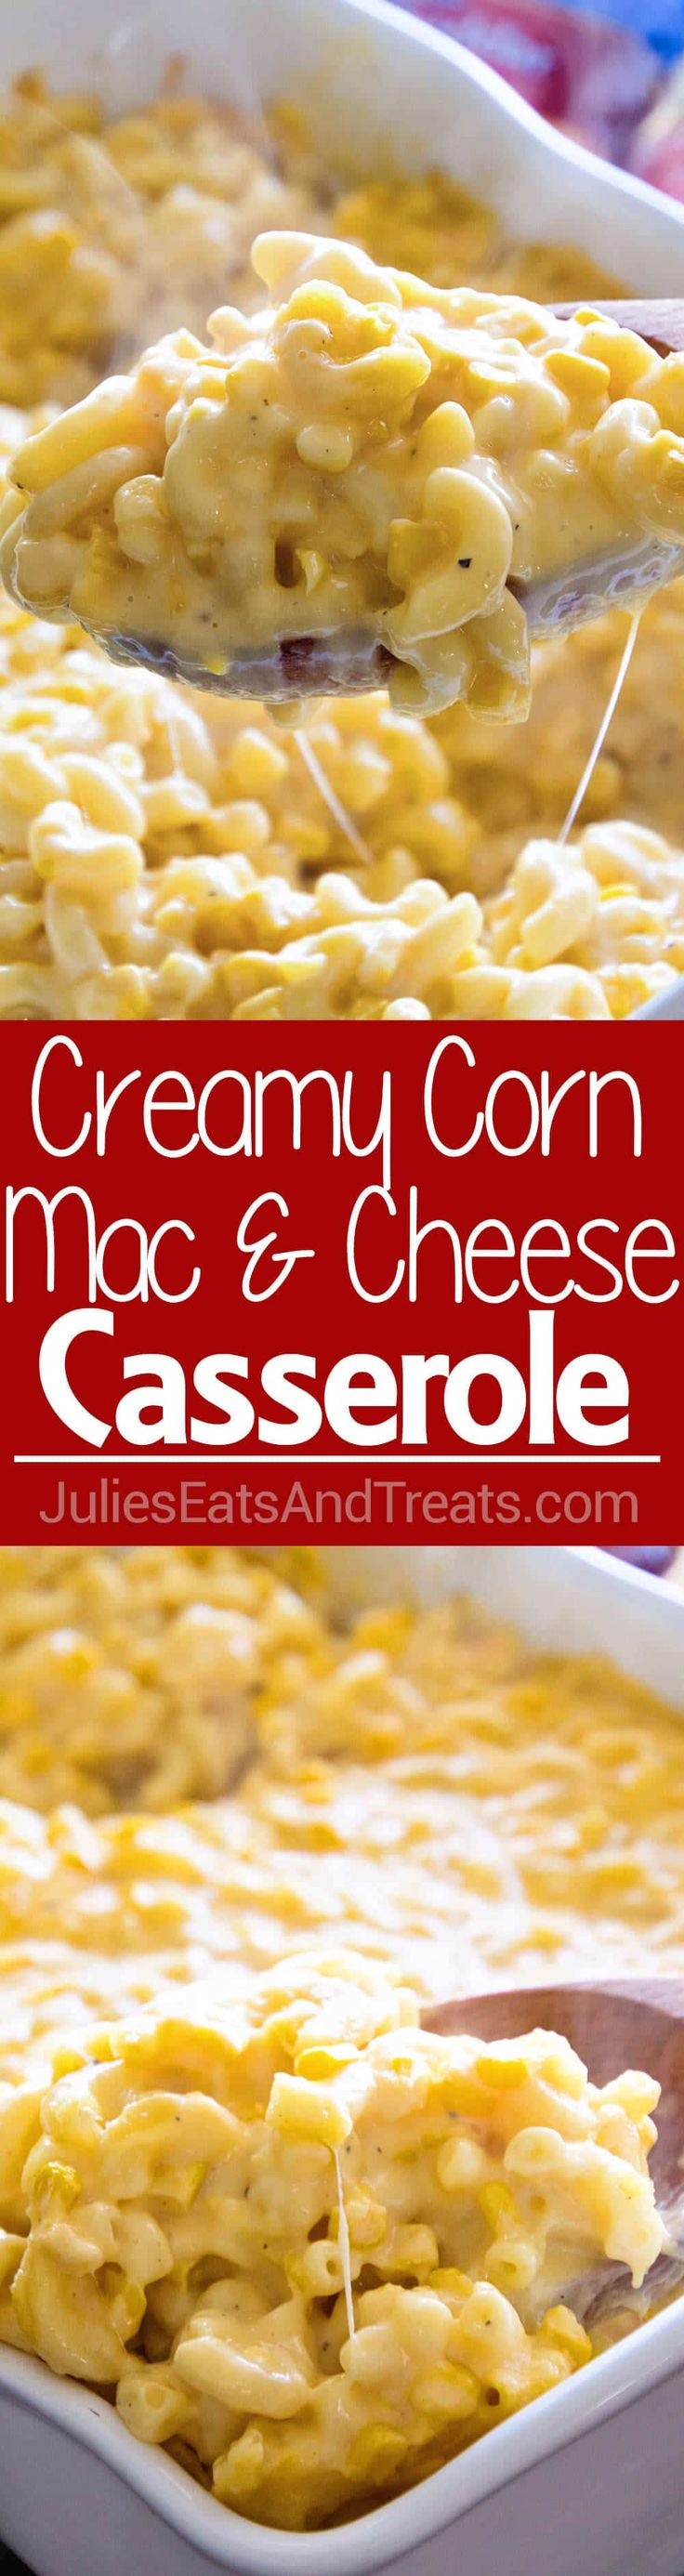 Creamy Corn Macaroni and Cheese Casserole ~ Amazing, Creamy, Cheesy Homemade Macaroni and Cheese with Corn! The Perfect Side Dish for Your Holiday Meals! ~ https://www.julieseatsandtreats.com